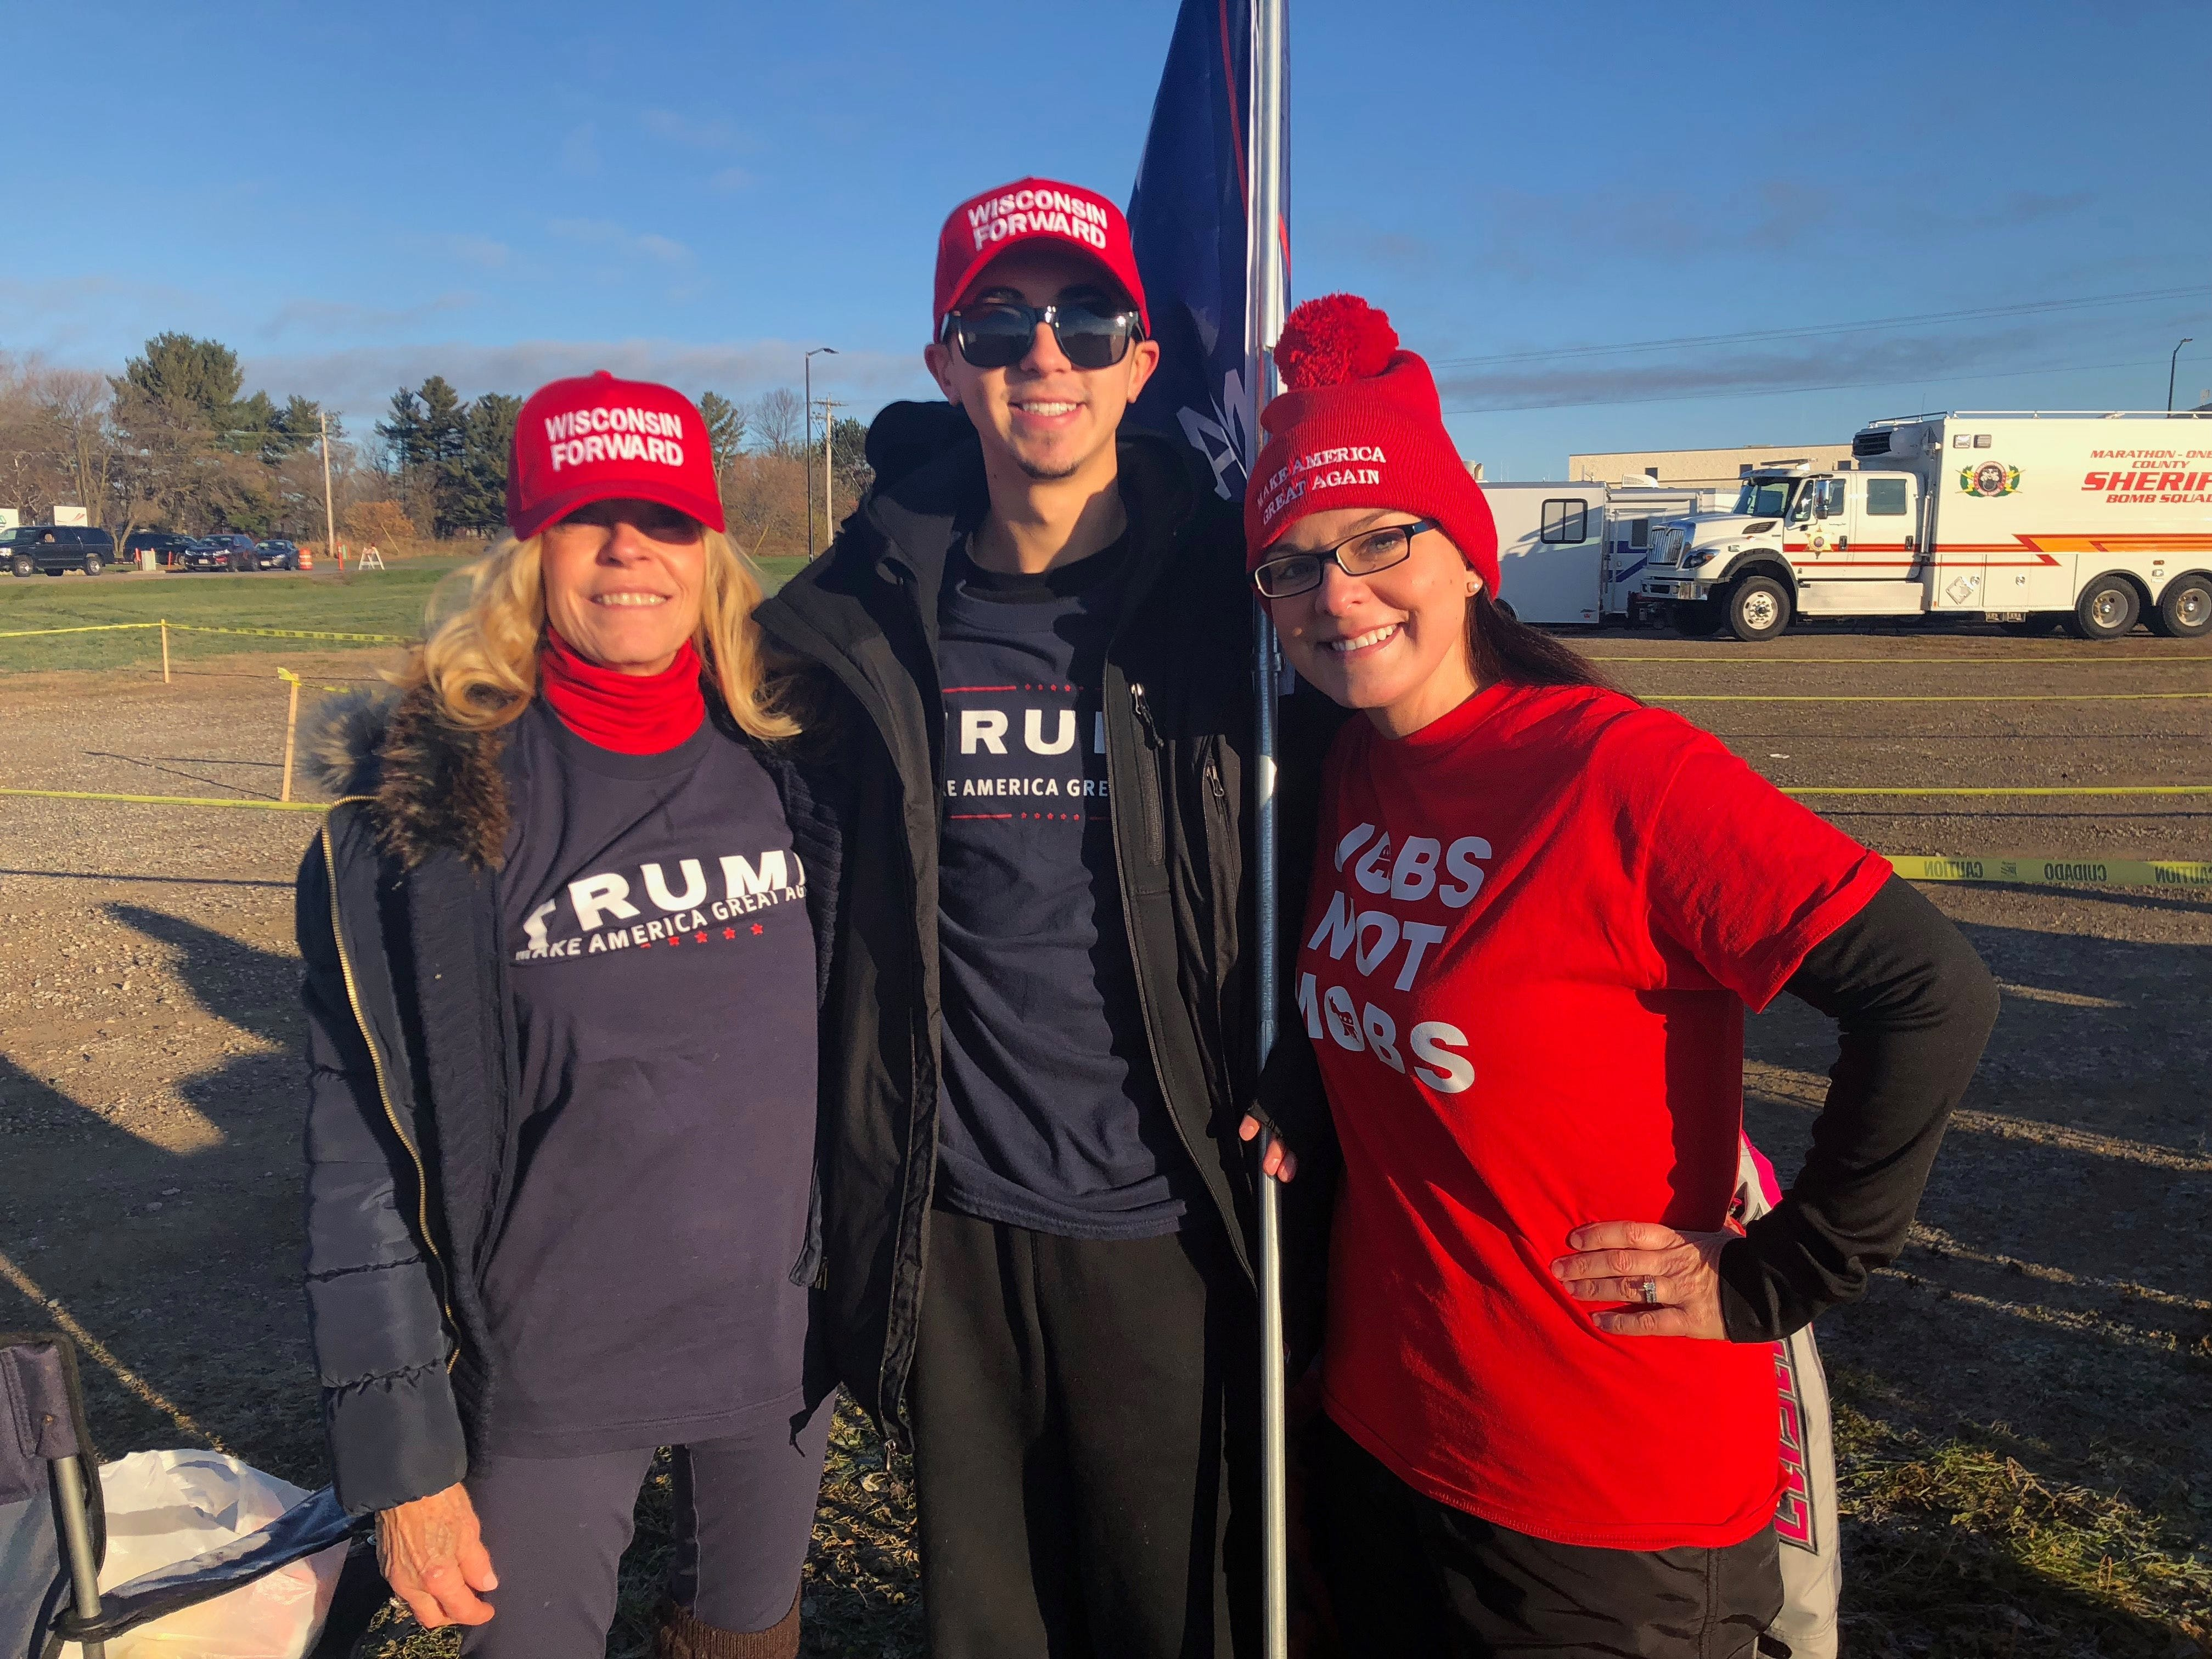 Jody Quinnell, Chaz Fuller and Jennifer Hunter were the first three Trump fans in line, showing up around 6:30 p.m. Tuesday night and camping overnight in tents.